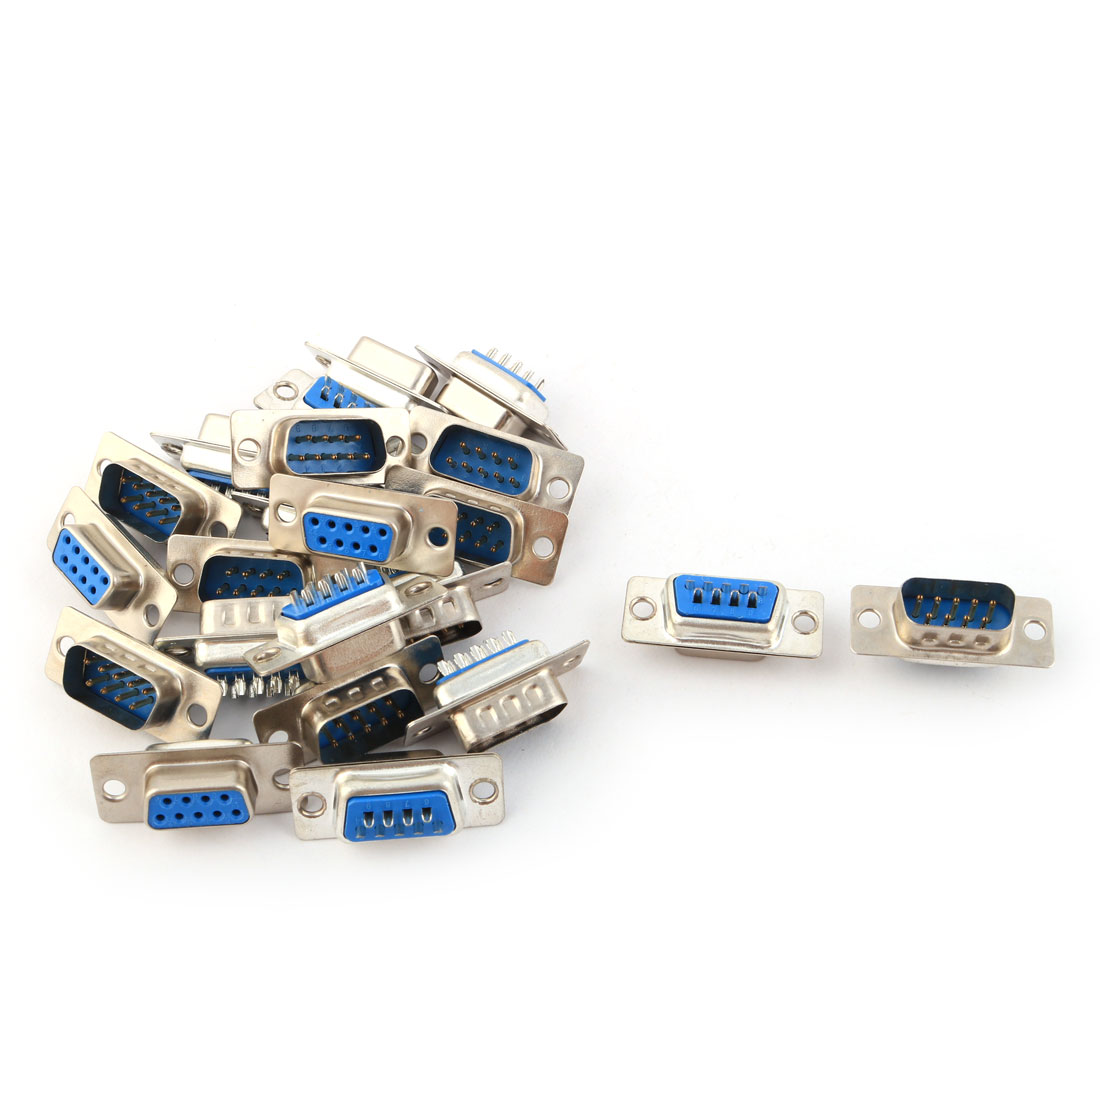 DB9 9 Pin Female to Male Solder Type Computer Cable Adapter Connectors 11 Pairs